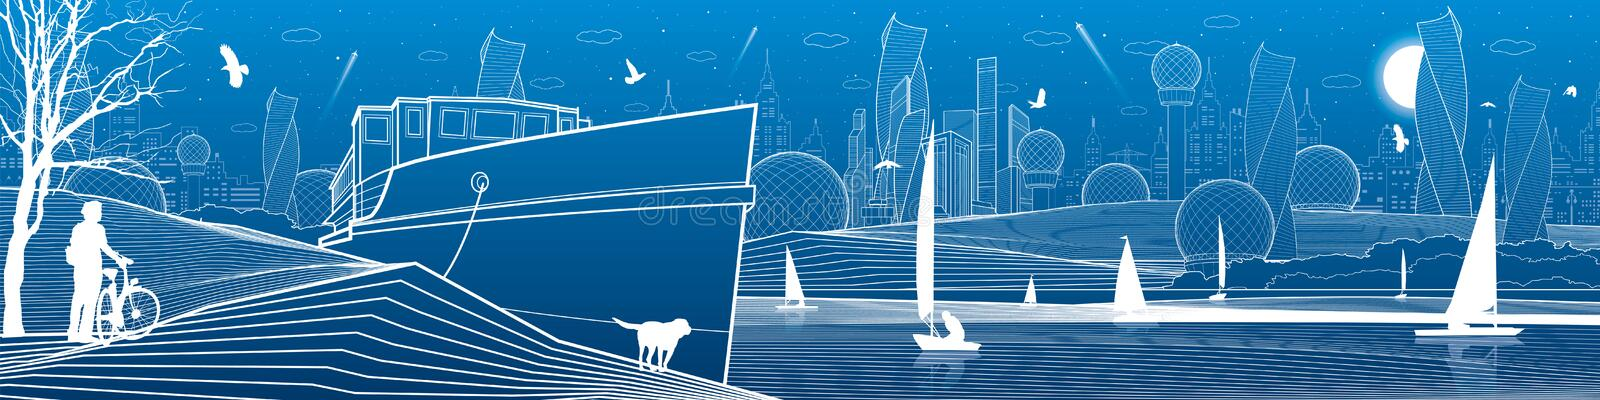 City infrastructure panoramic illustration. Cyclist with dog under tree. Ship landed at sea shore. Sailing yachts by water. Futuri stock illustration